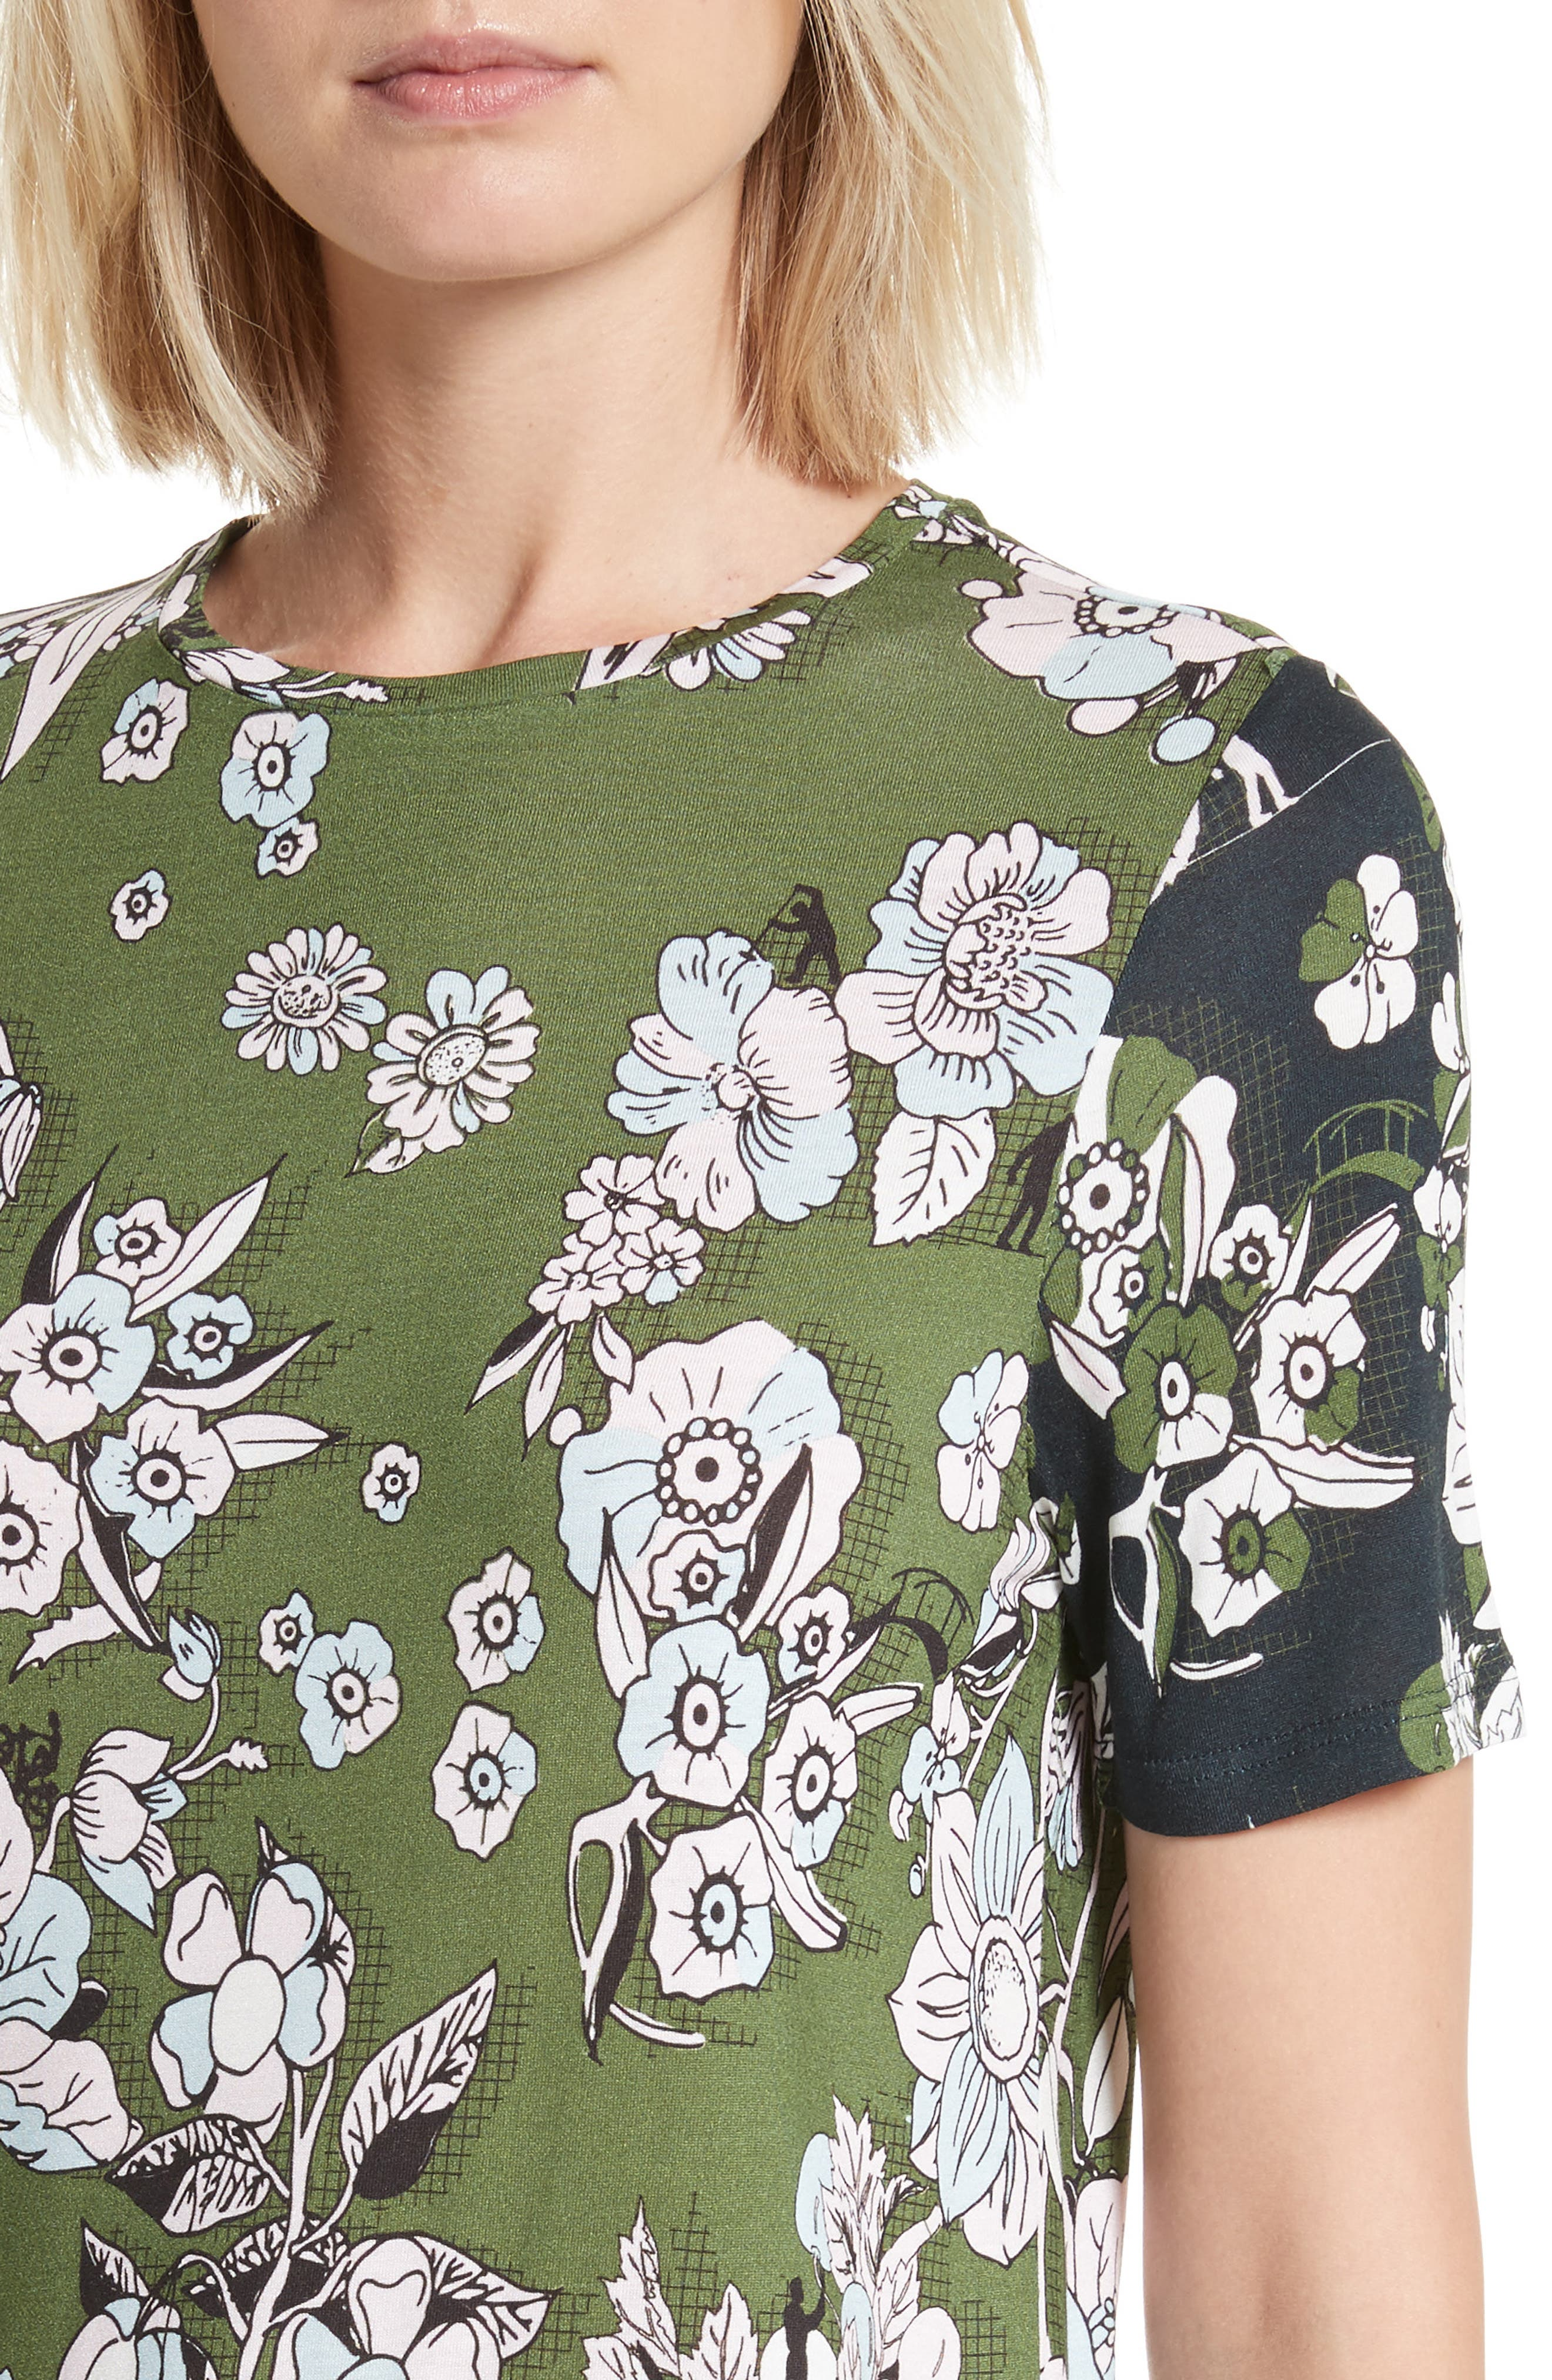 Adren Floral Print Tee,                             Alternate thumbnail 4, color,                             Green